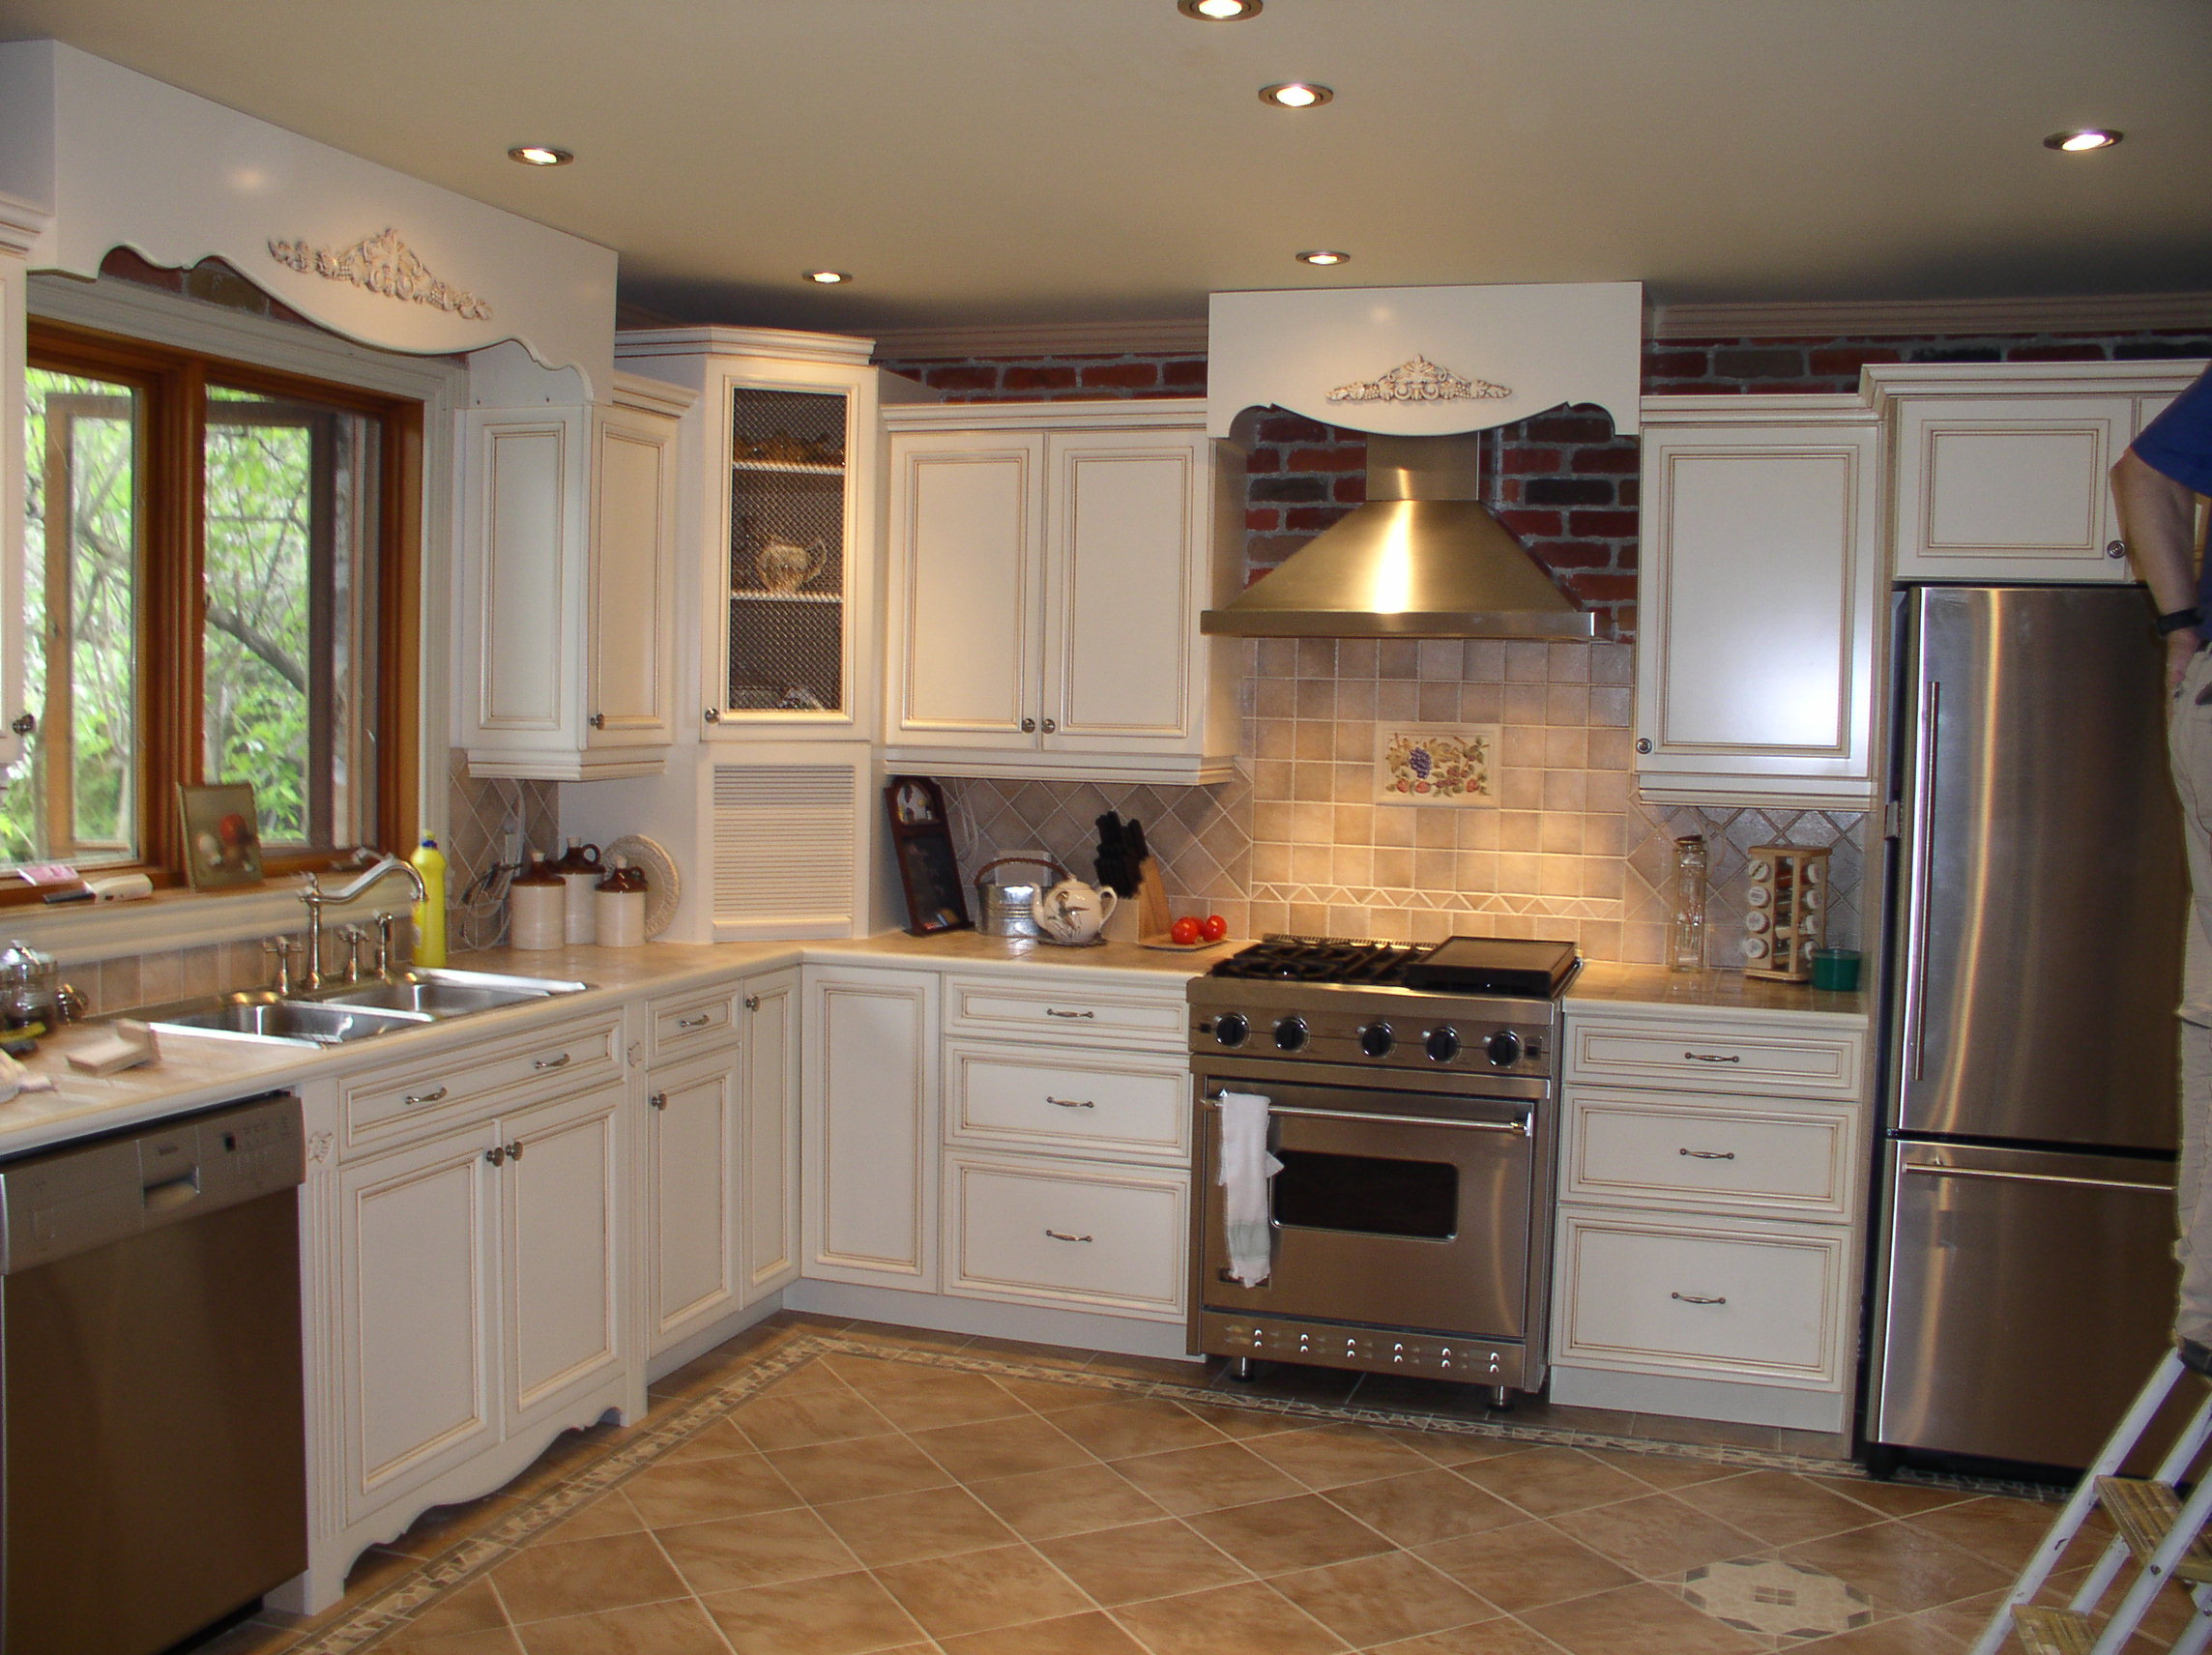 Traditional Kitchen with Artistic Kitchen Cabinet Ideas and Glossy Range Hood near Tile Backsplash